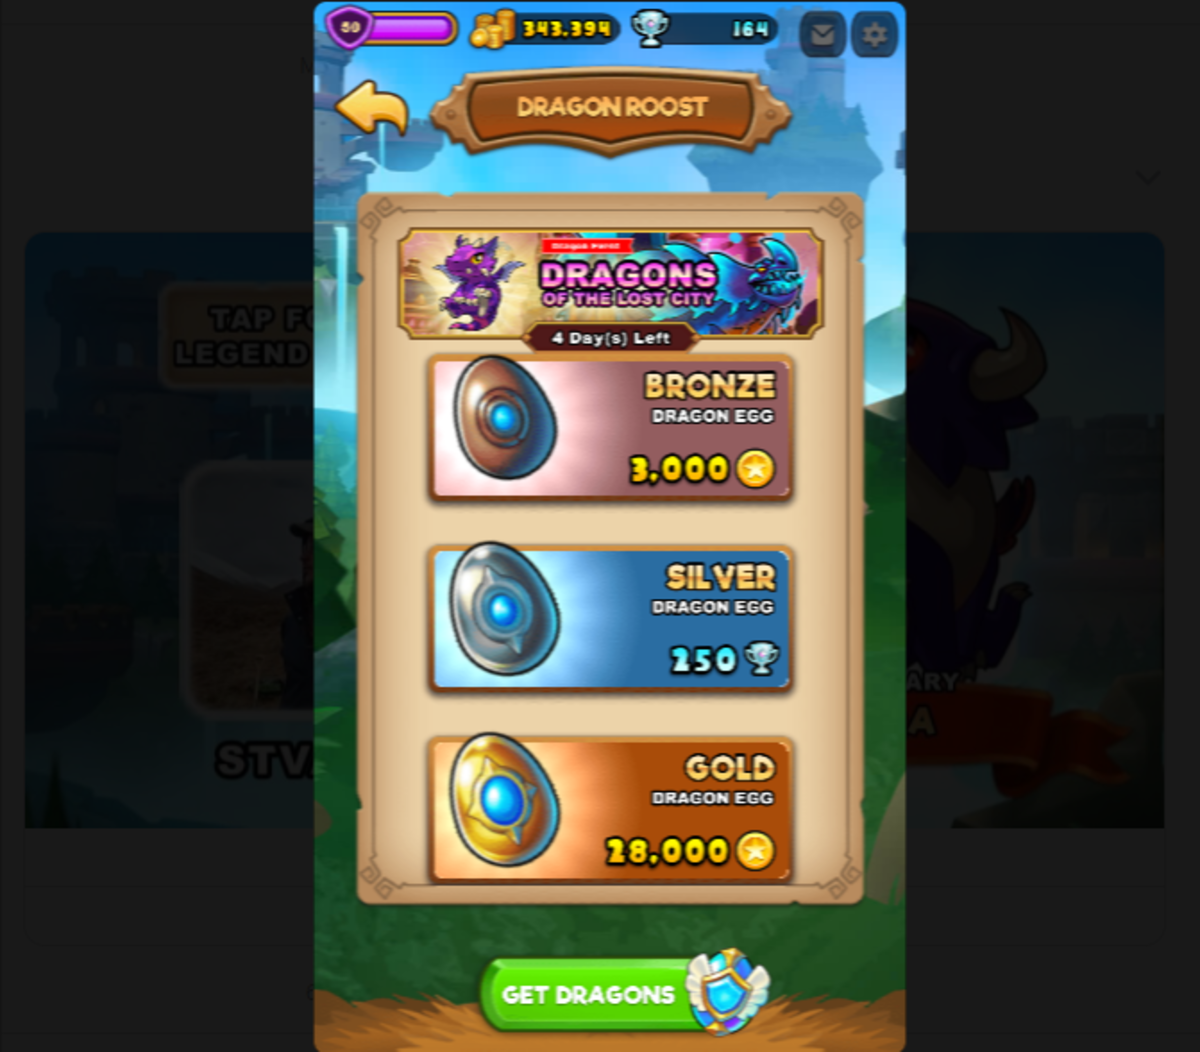 everwing-tip-get-more-legendary-dragons